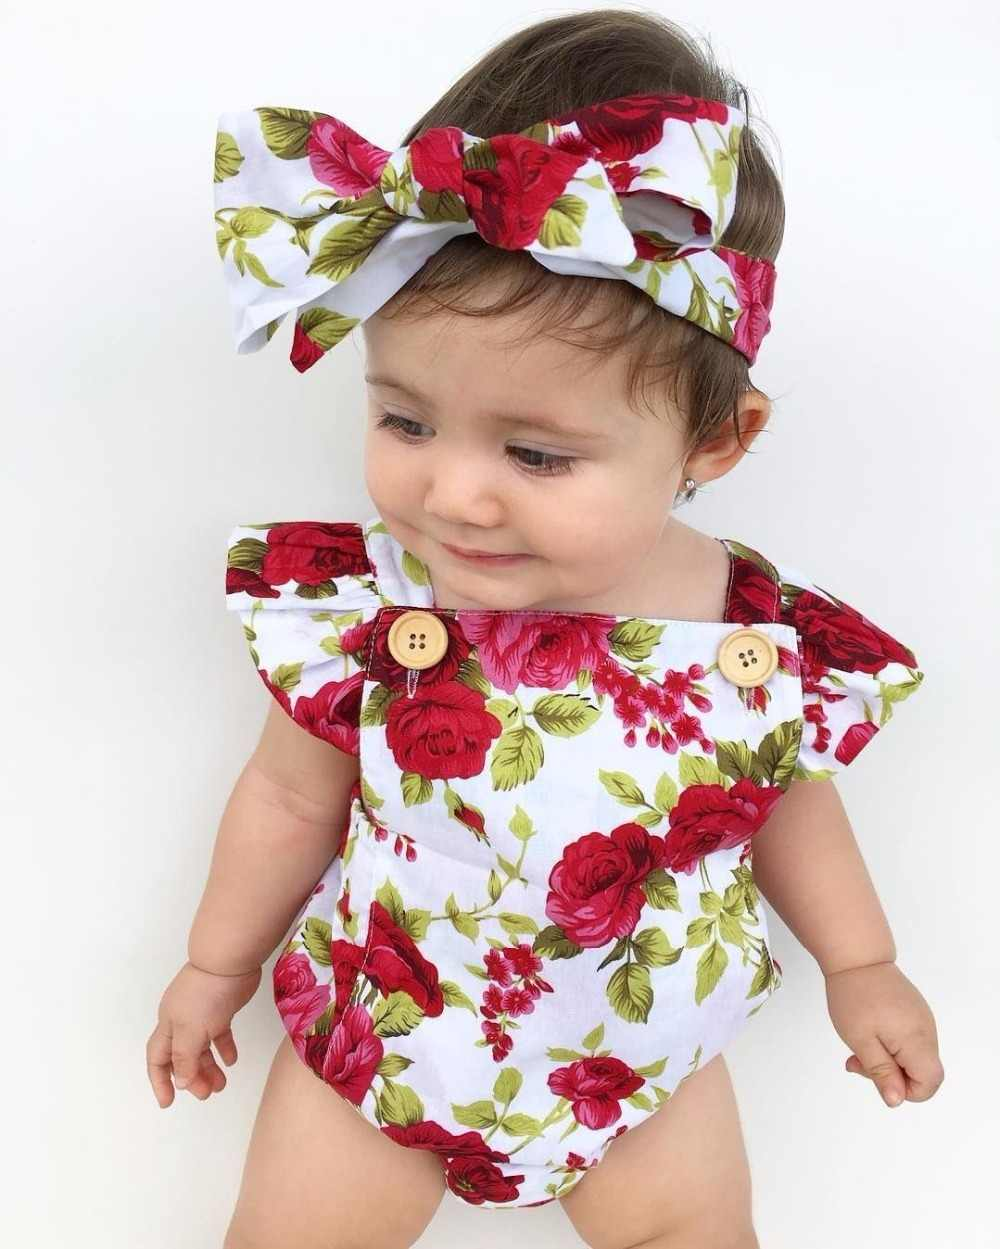 7f94b6d5a93 ... Newborn Infant Baby Casual Romper Rose Print Floral Jumpsuit+Headband  Overall Lucky Cute Bebe Kids ...